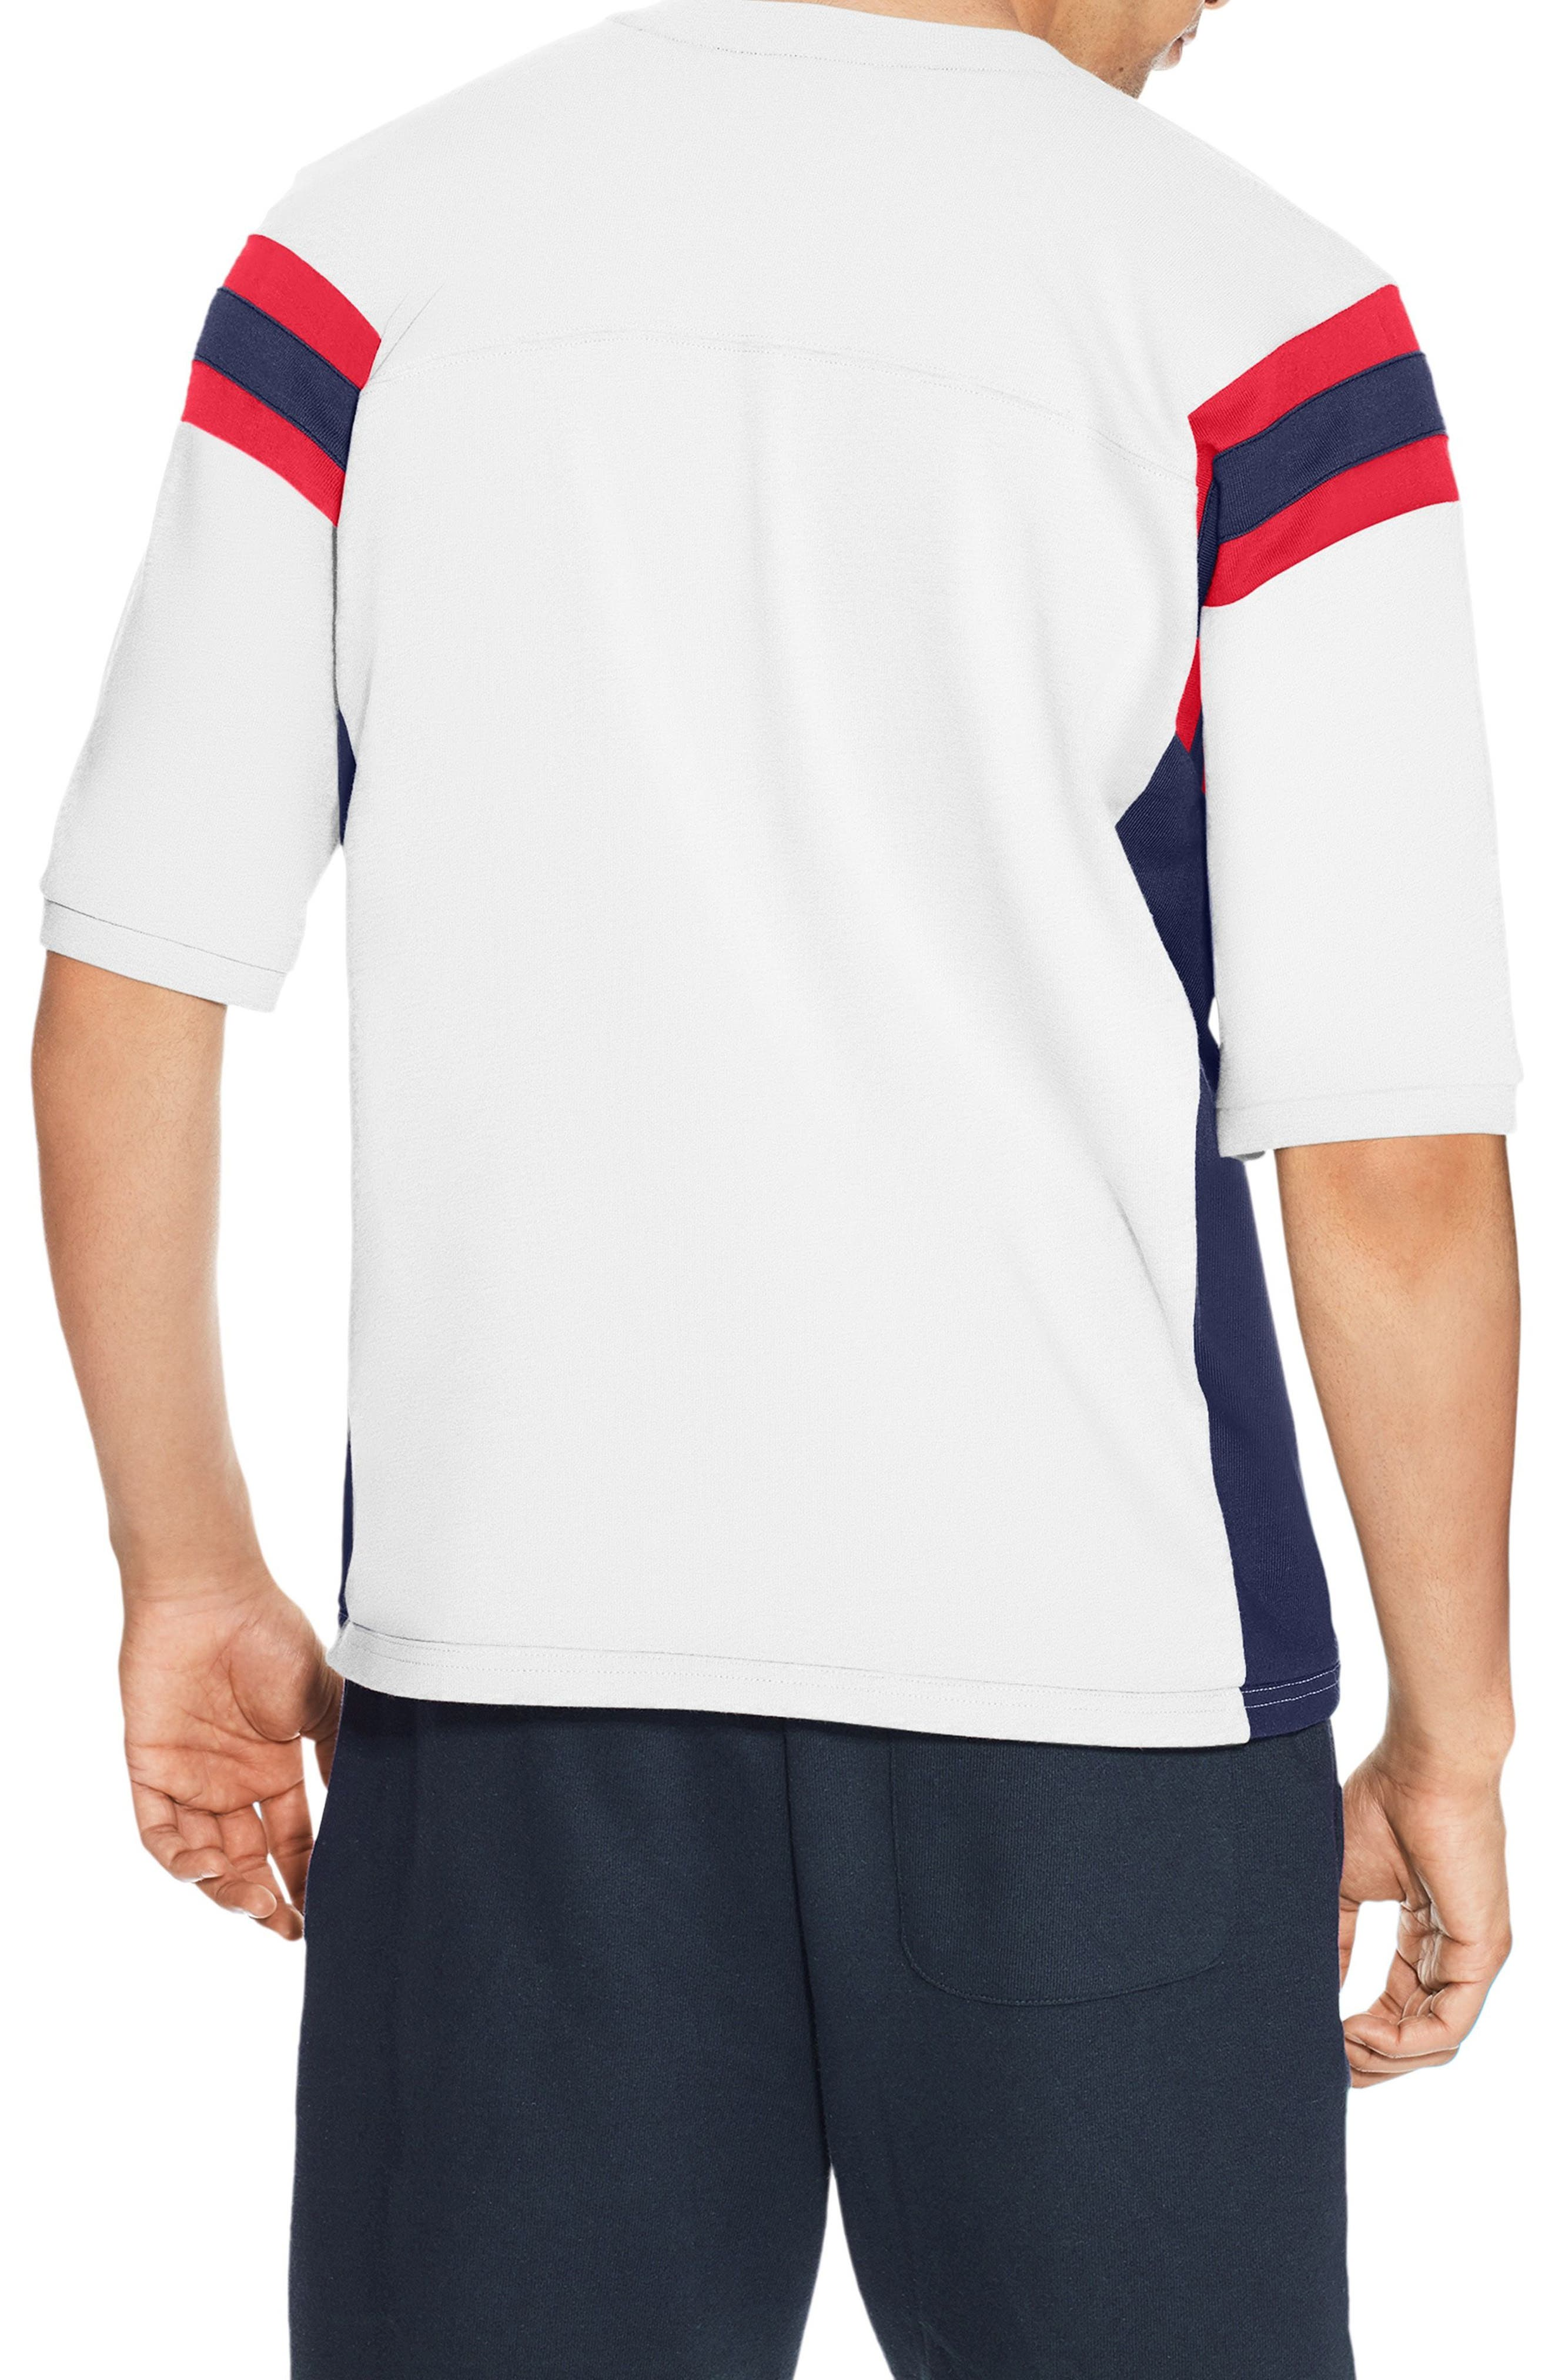 Heavyweight Football Jersey T-Shirt,                             Alternate thumbnail 2, color,                             White/ Imperial Indigio